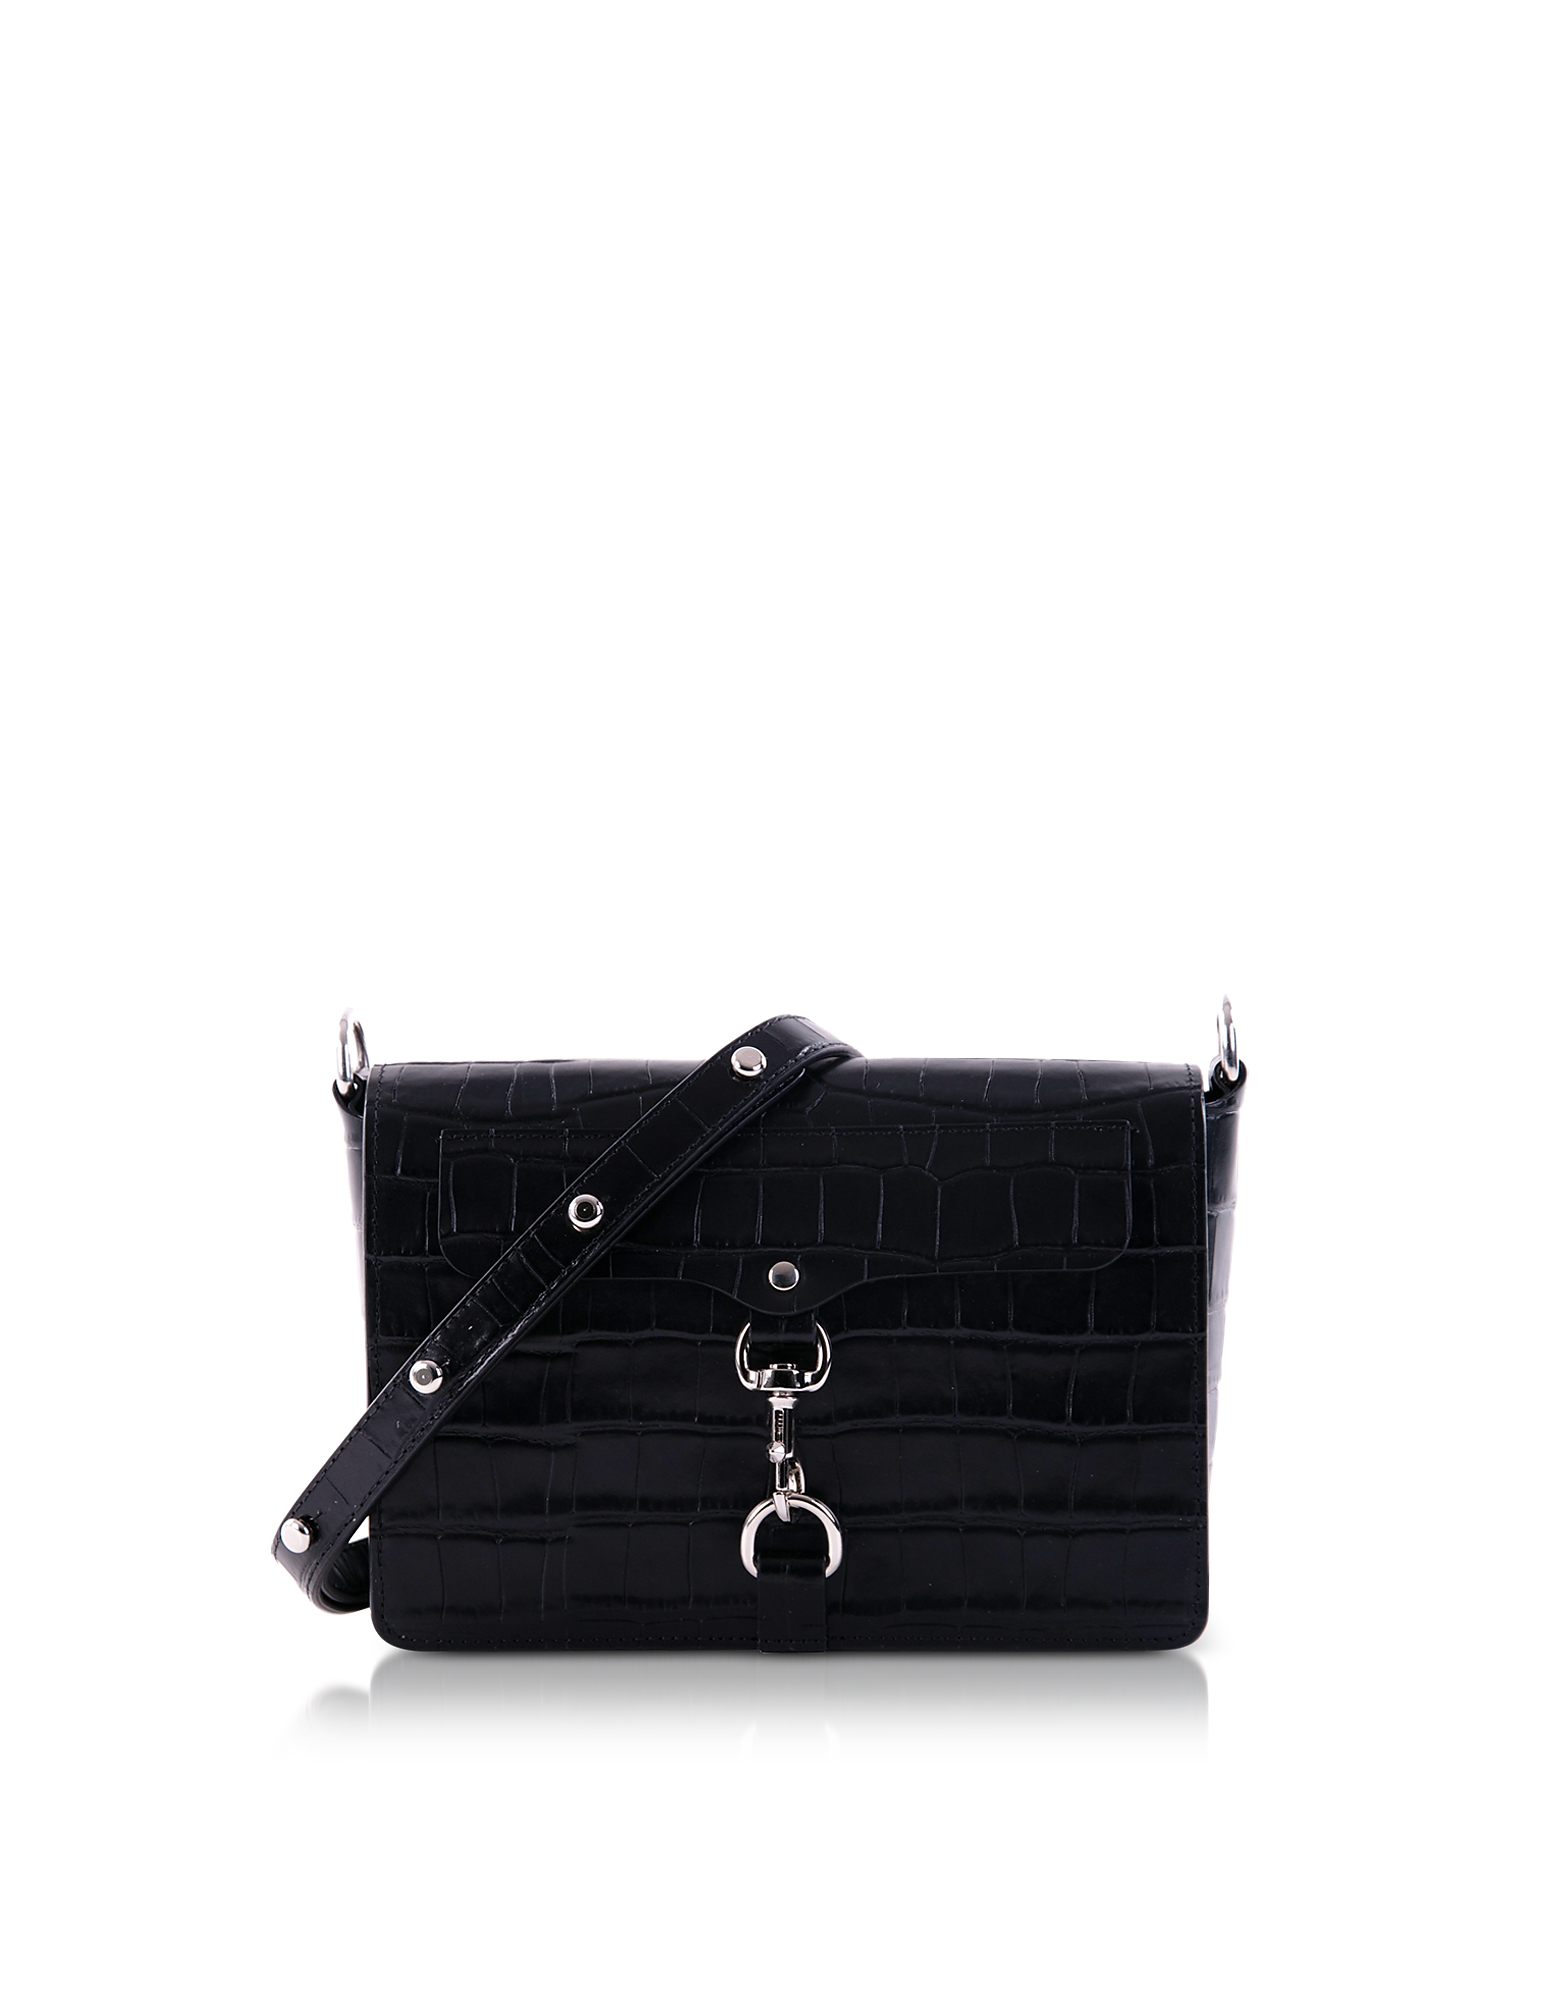 Croco Embossed Leather Mab Flap Crossbody